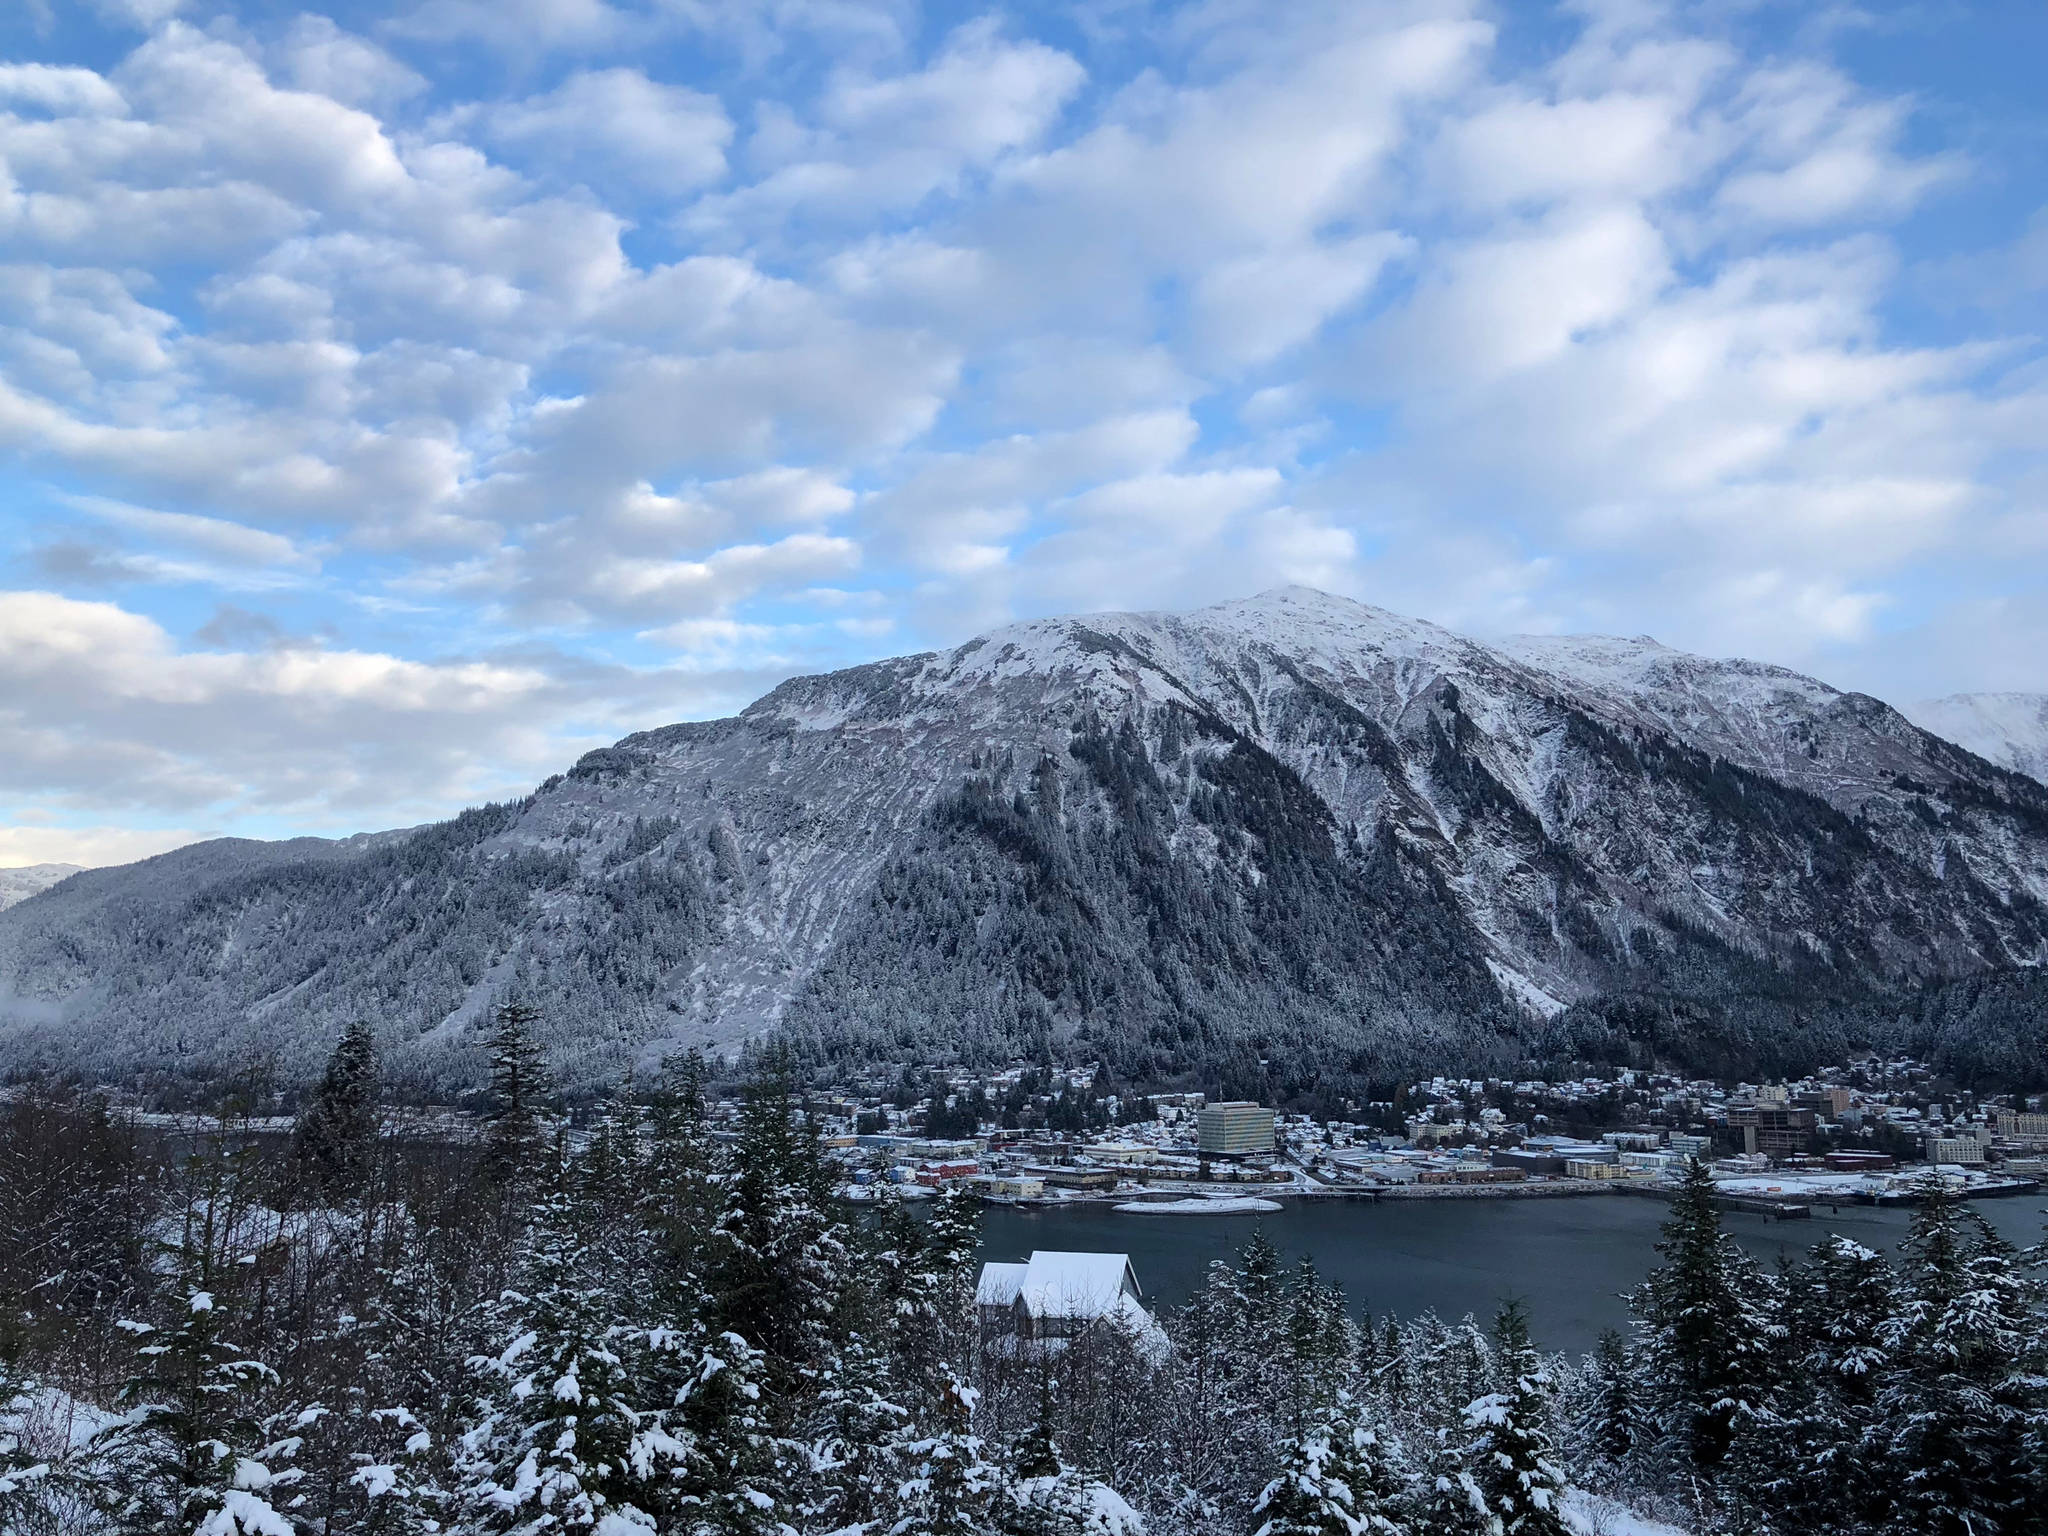 The first snow of the season covers Juneau on Saturday, Nov. 11, 2017. (Angelo Saggiomo | Juneau Empire)